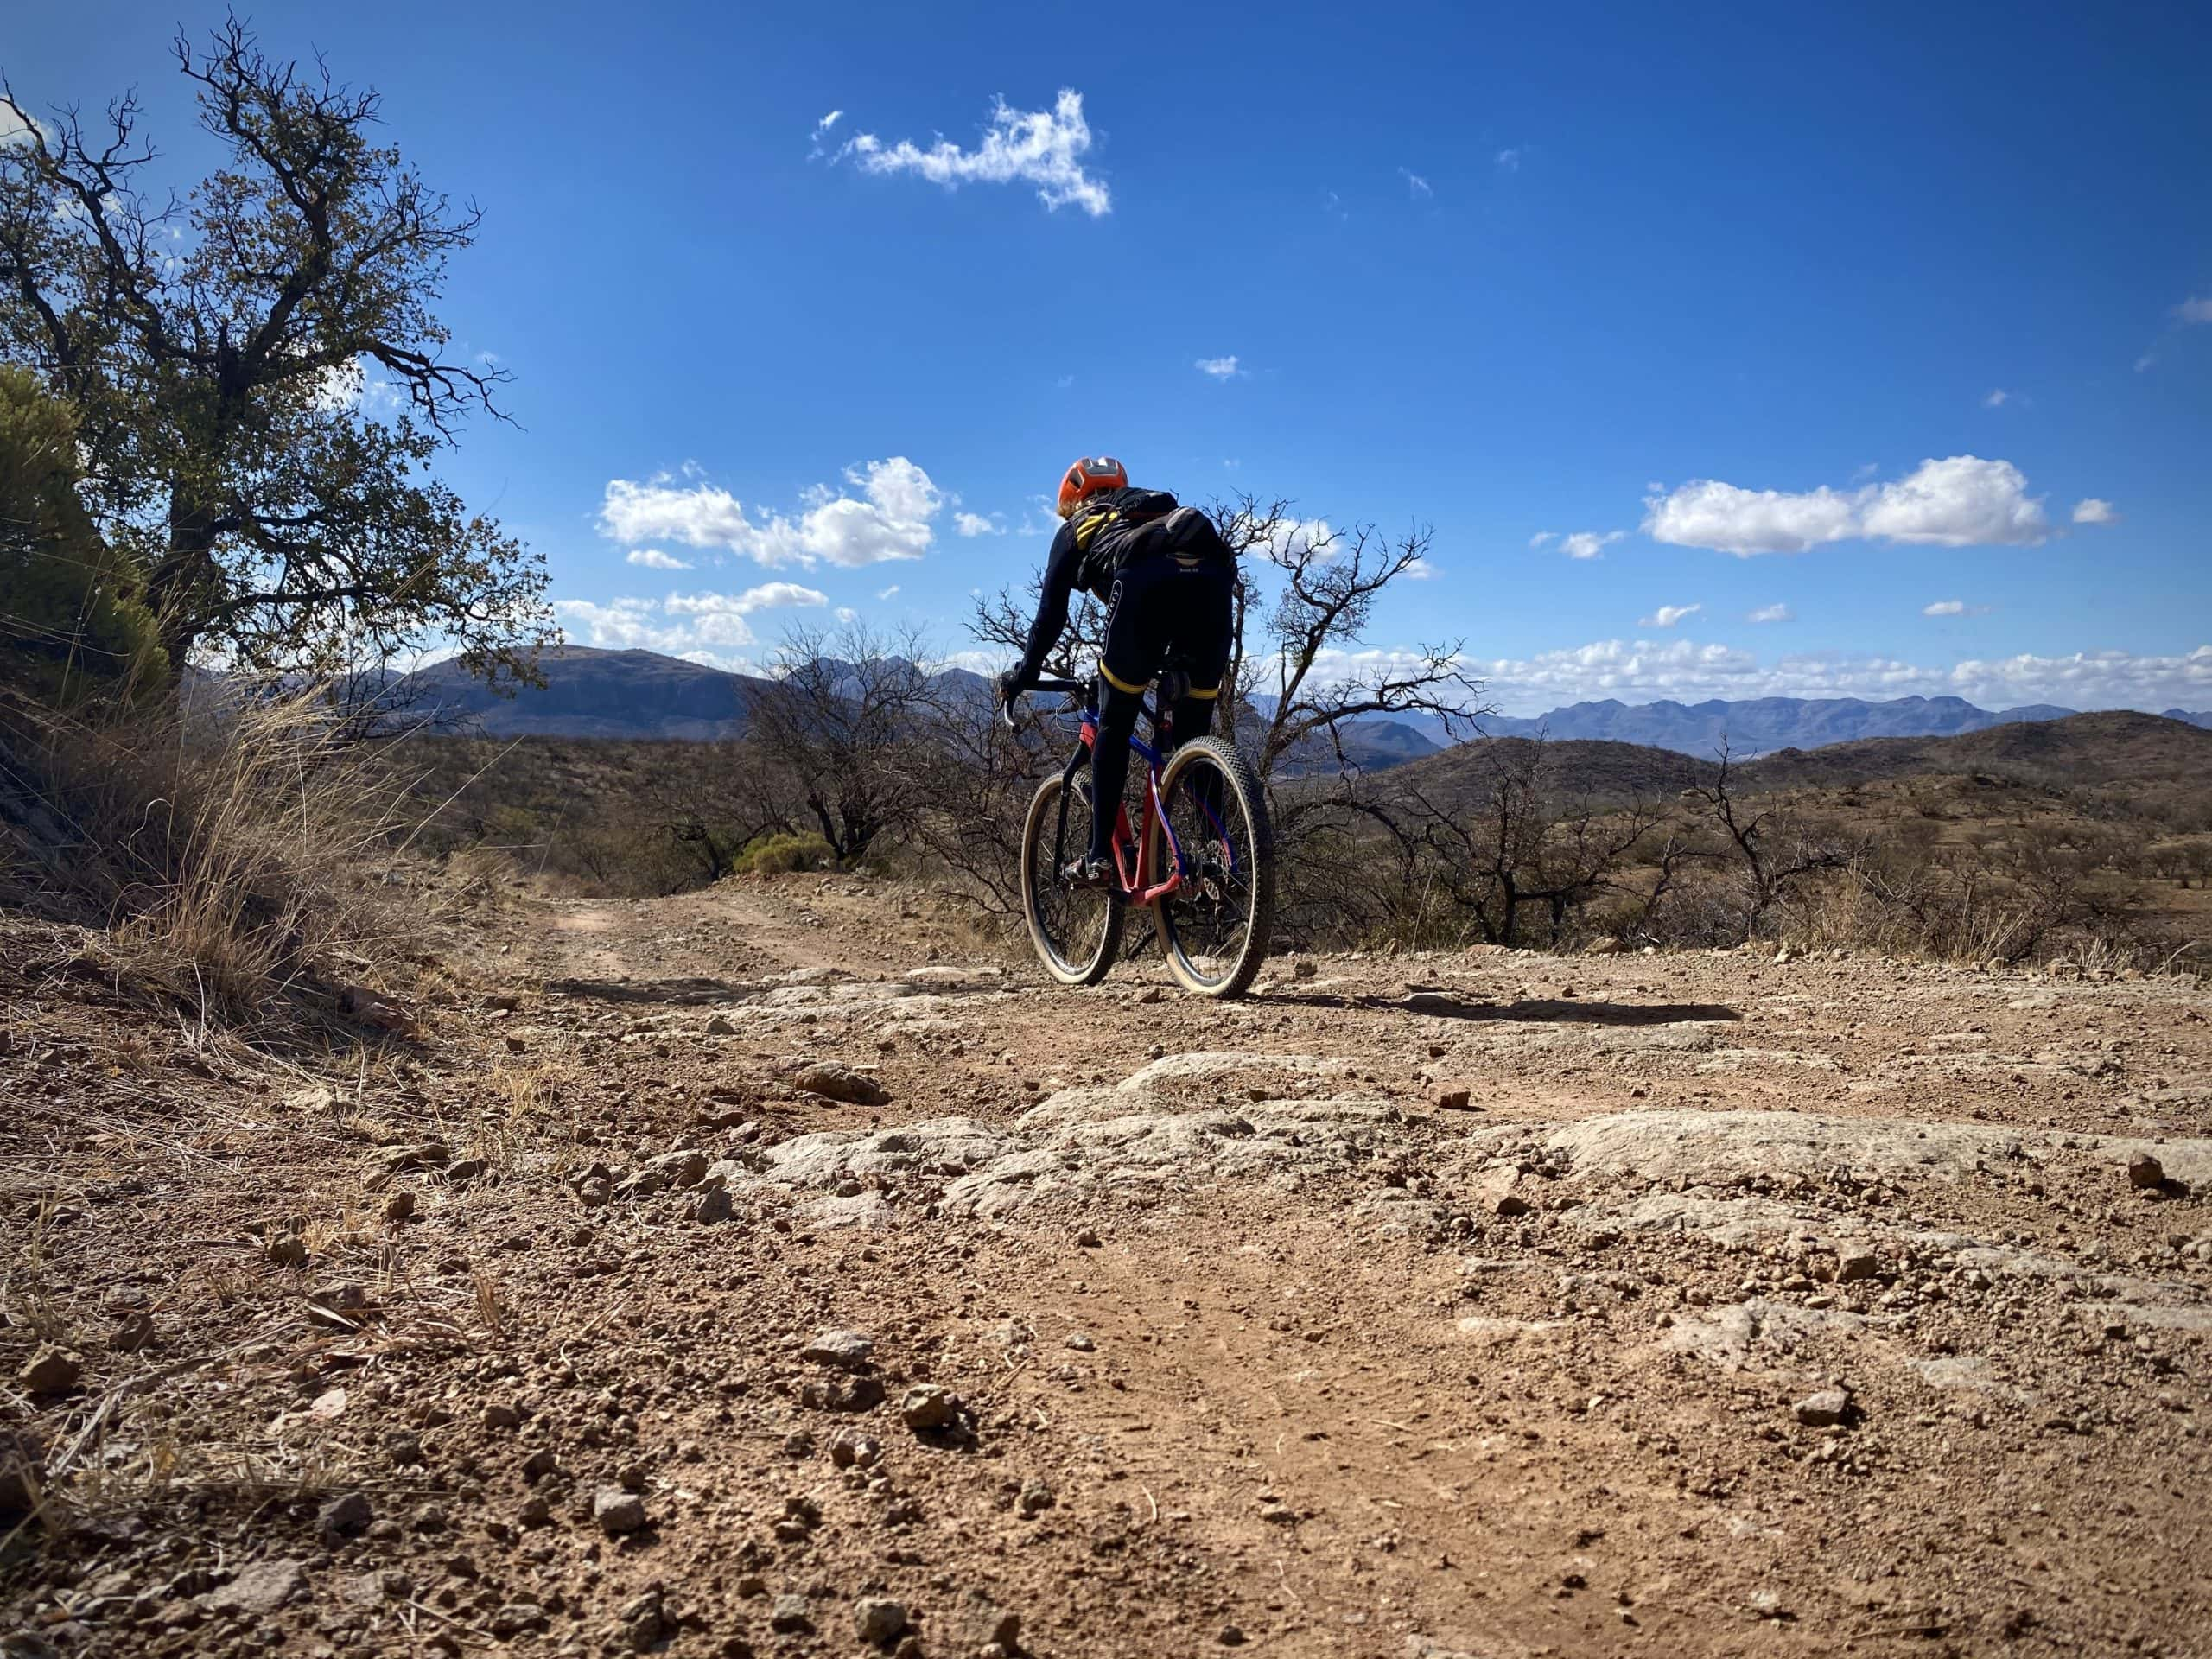 Gravel Girl descending the rough and gnarly from Alto Ruins, Arizona.